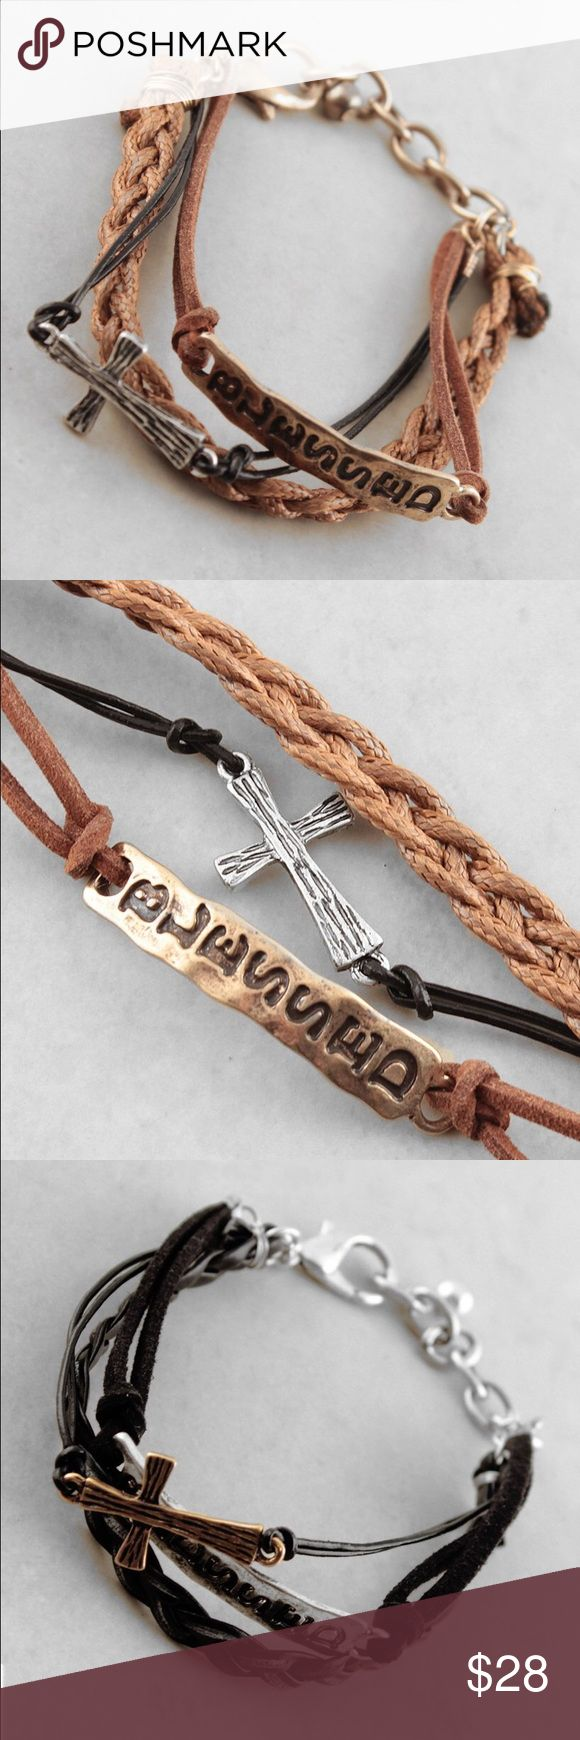 """Cross blessed bracelet Price is for one bracelet.          7""""L Antique Metal and Cord Lobster Clasp Closure. ❤️This bracelet will be marked down to $18 this weekend so lemme know if u want it❤️ Jewelry Bracelets"""